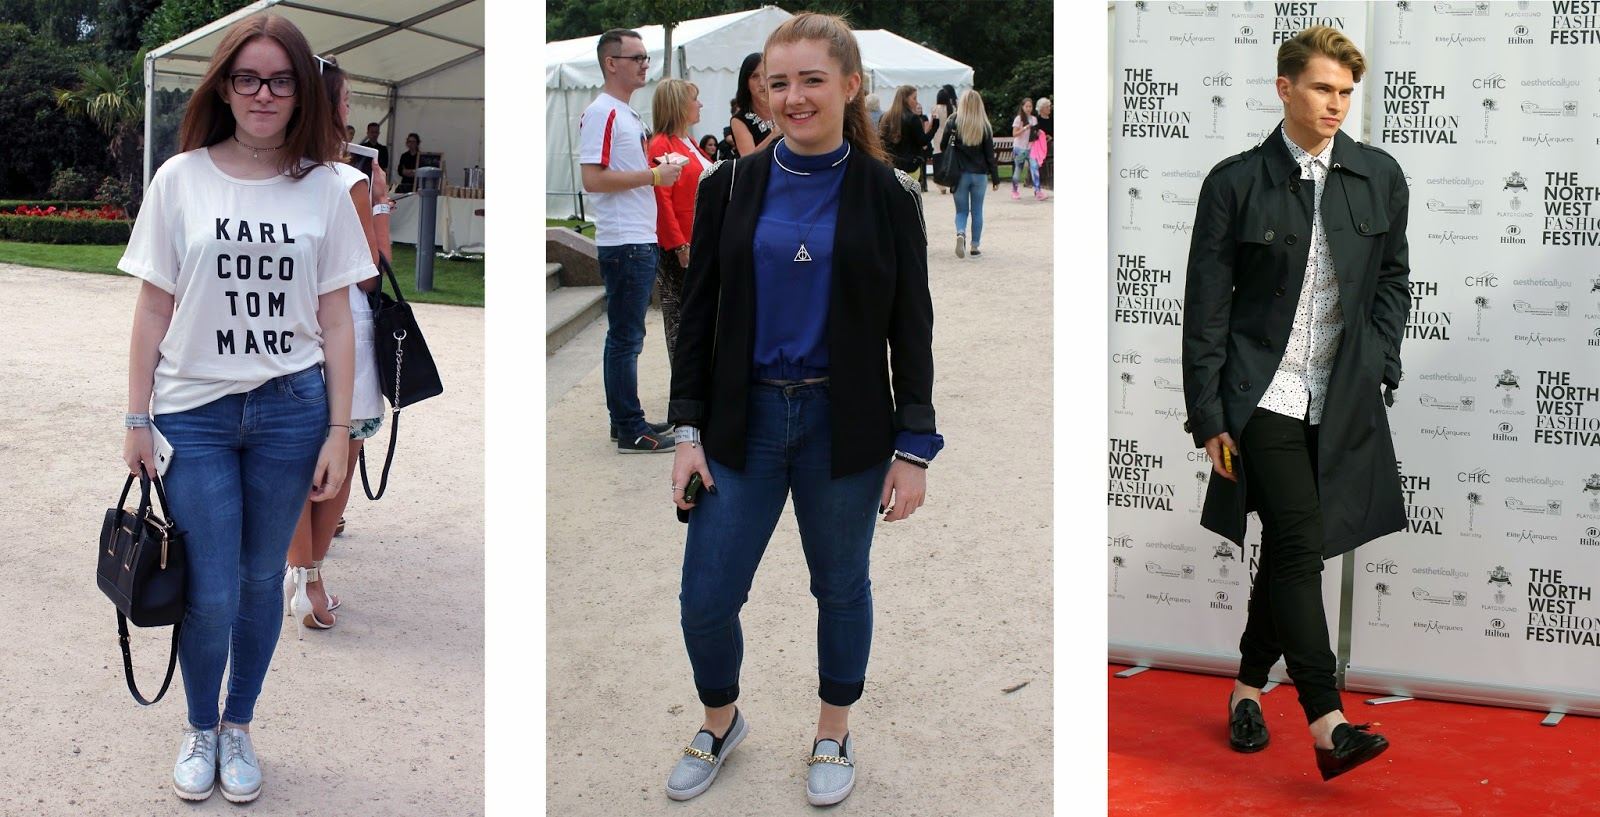 north west fashion festival streetstyle, emerging trends gender role reversal